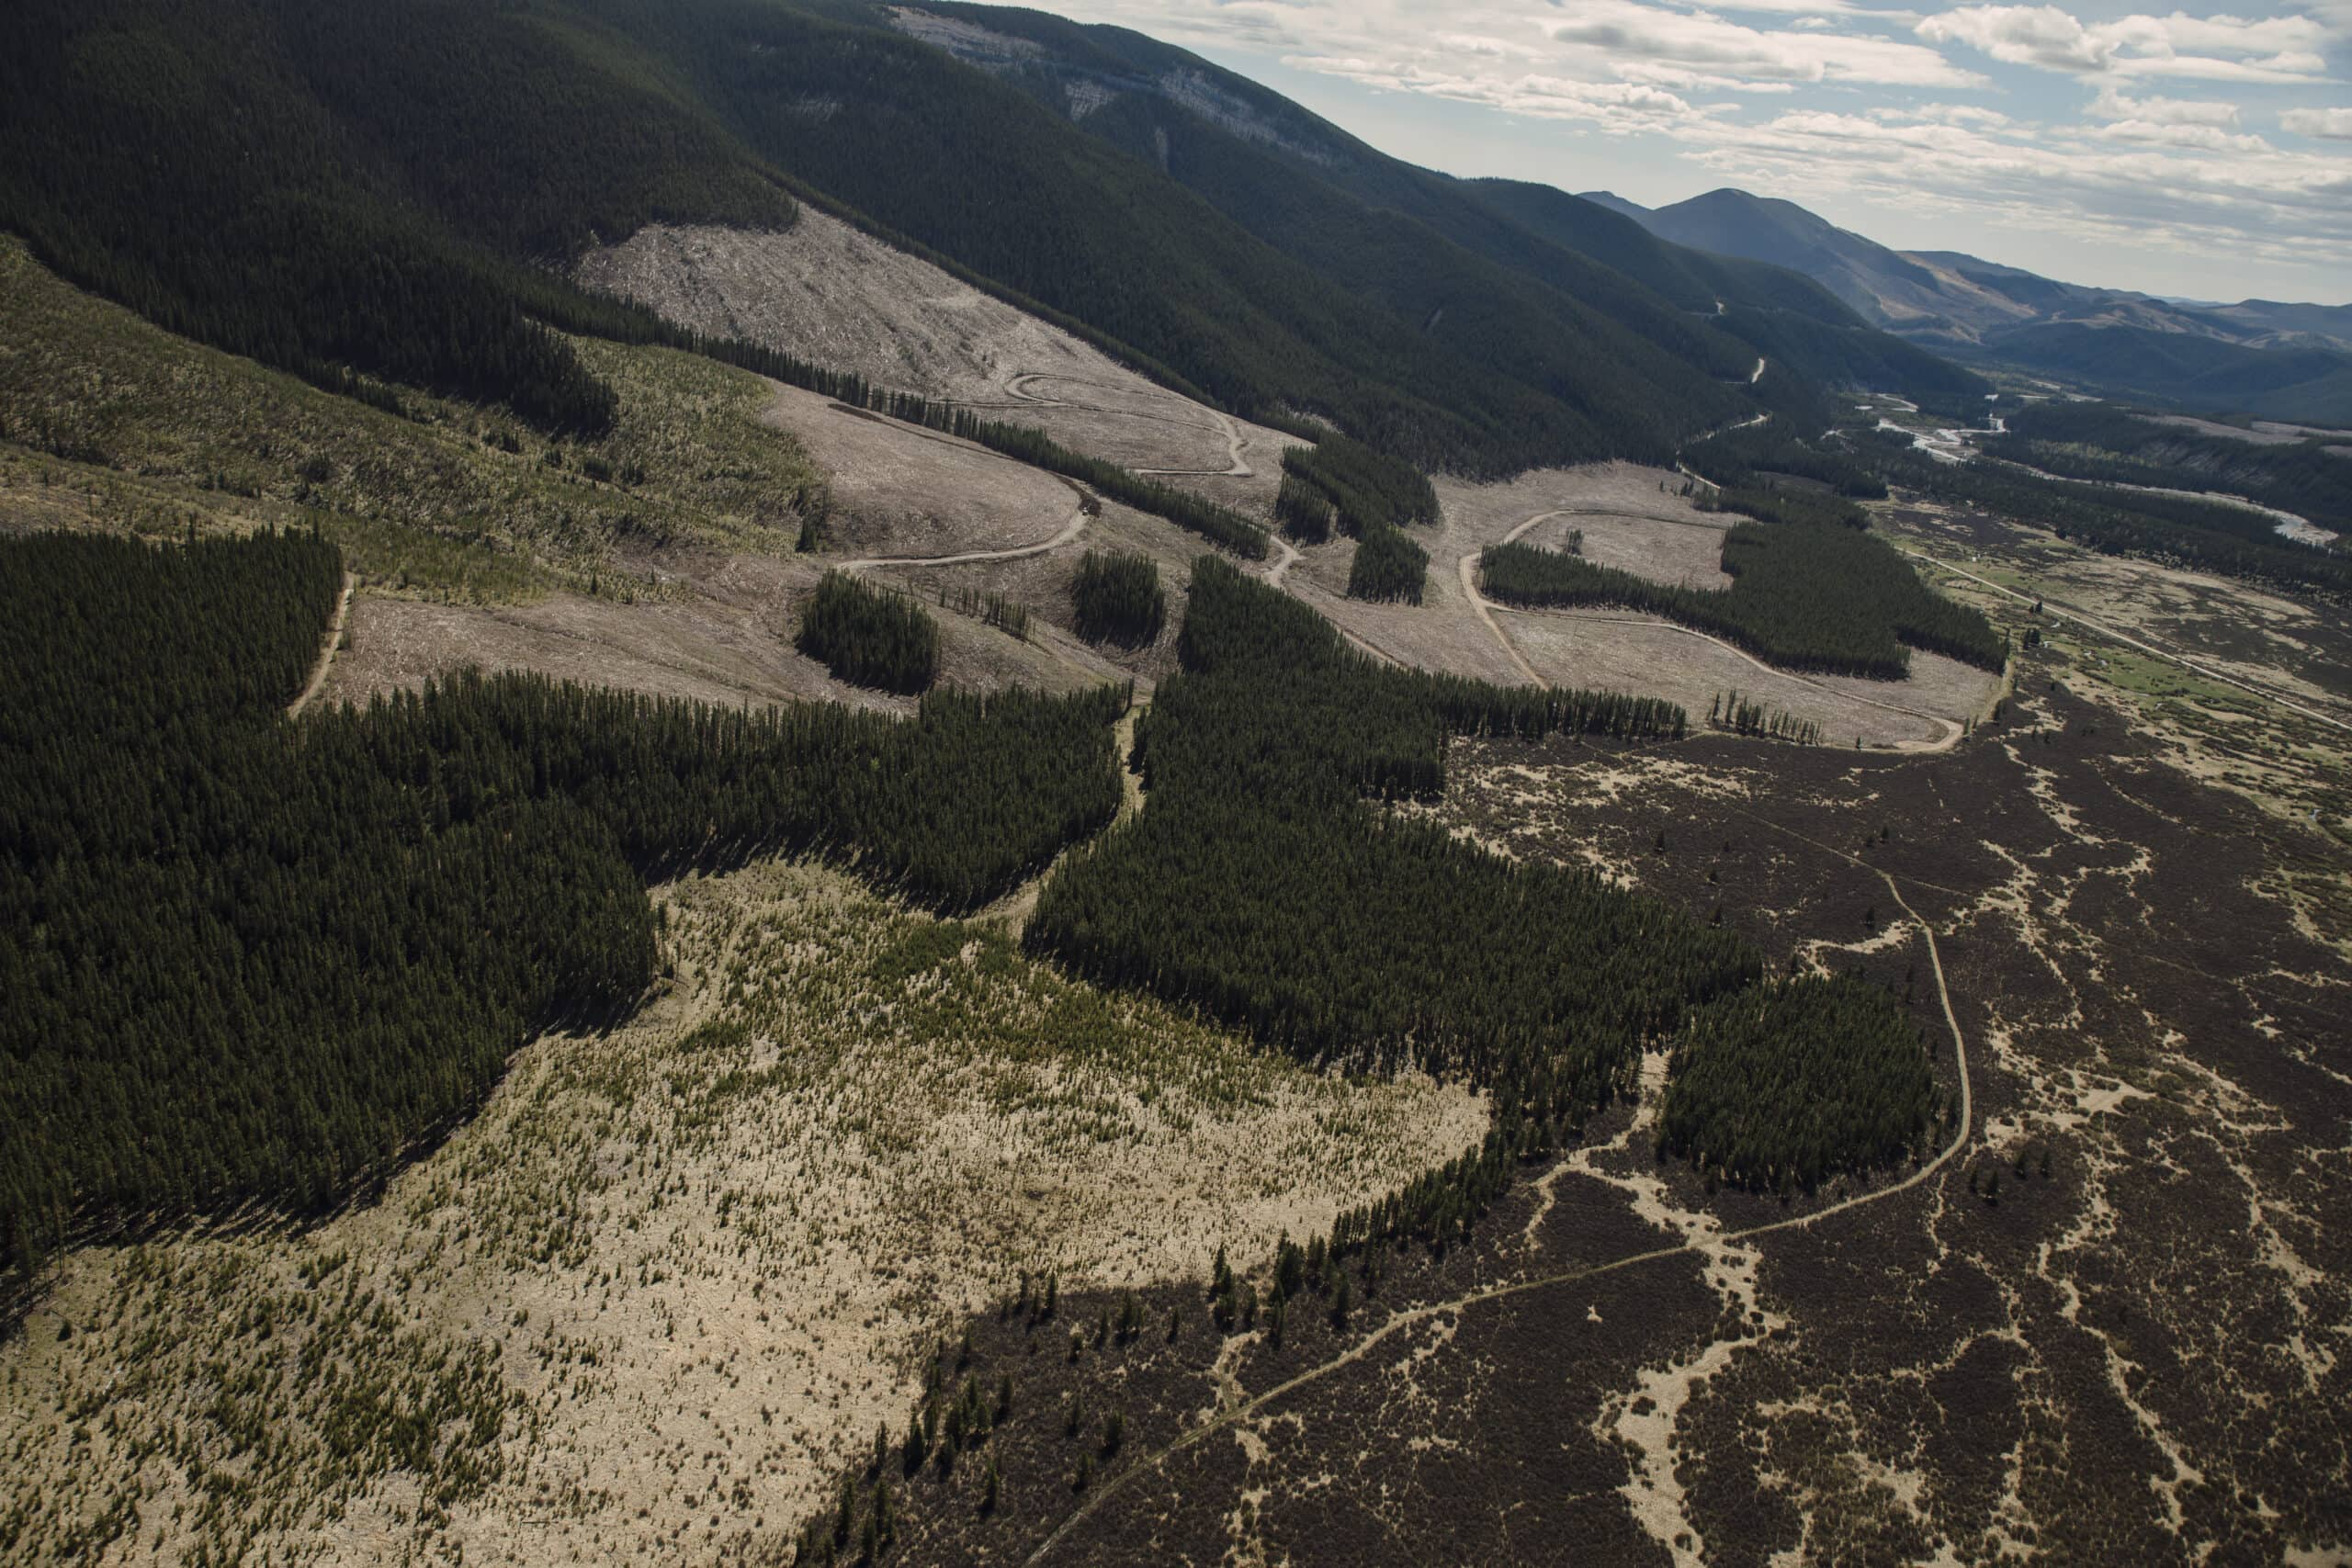 forestry cutblock coal lease eastern slopes Rocky Mountains